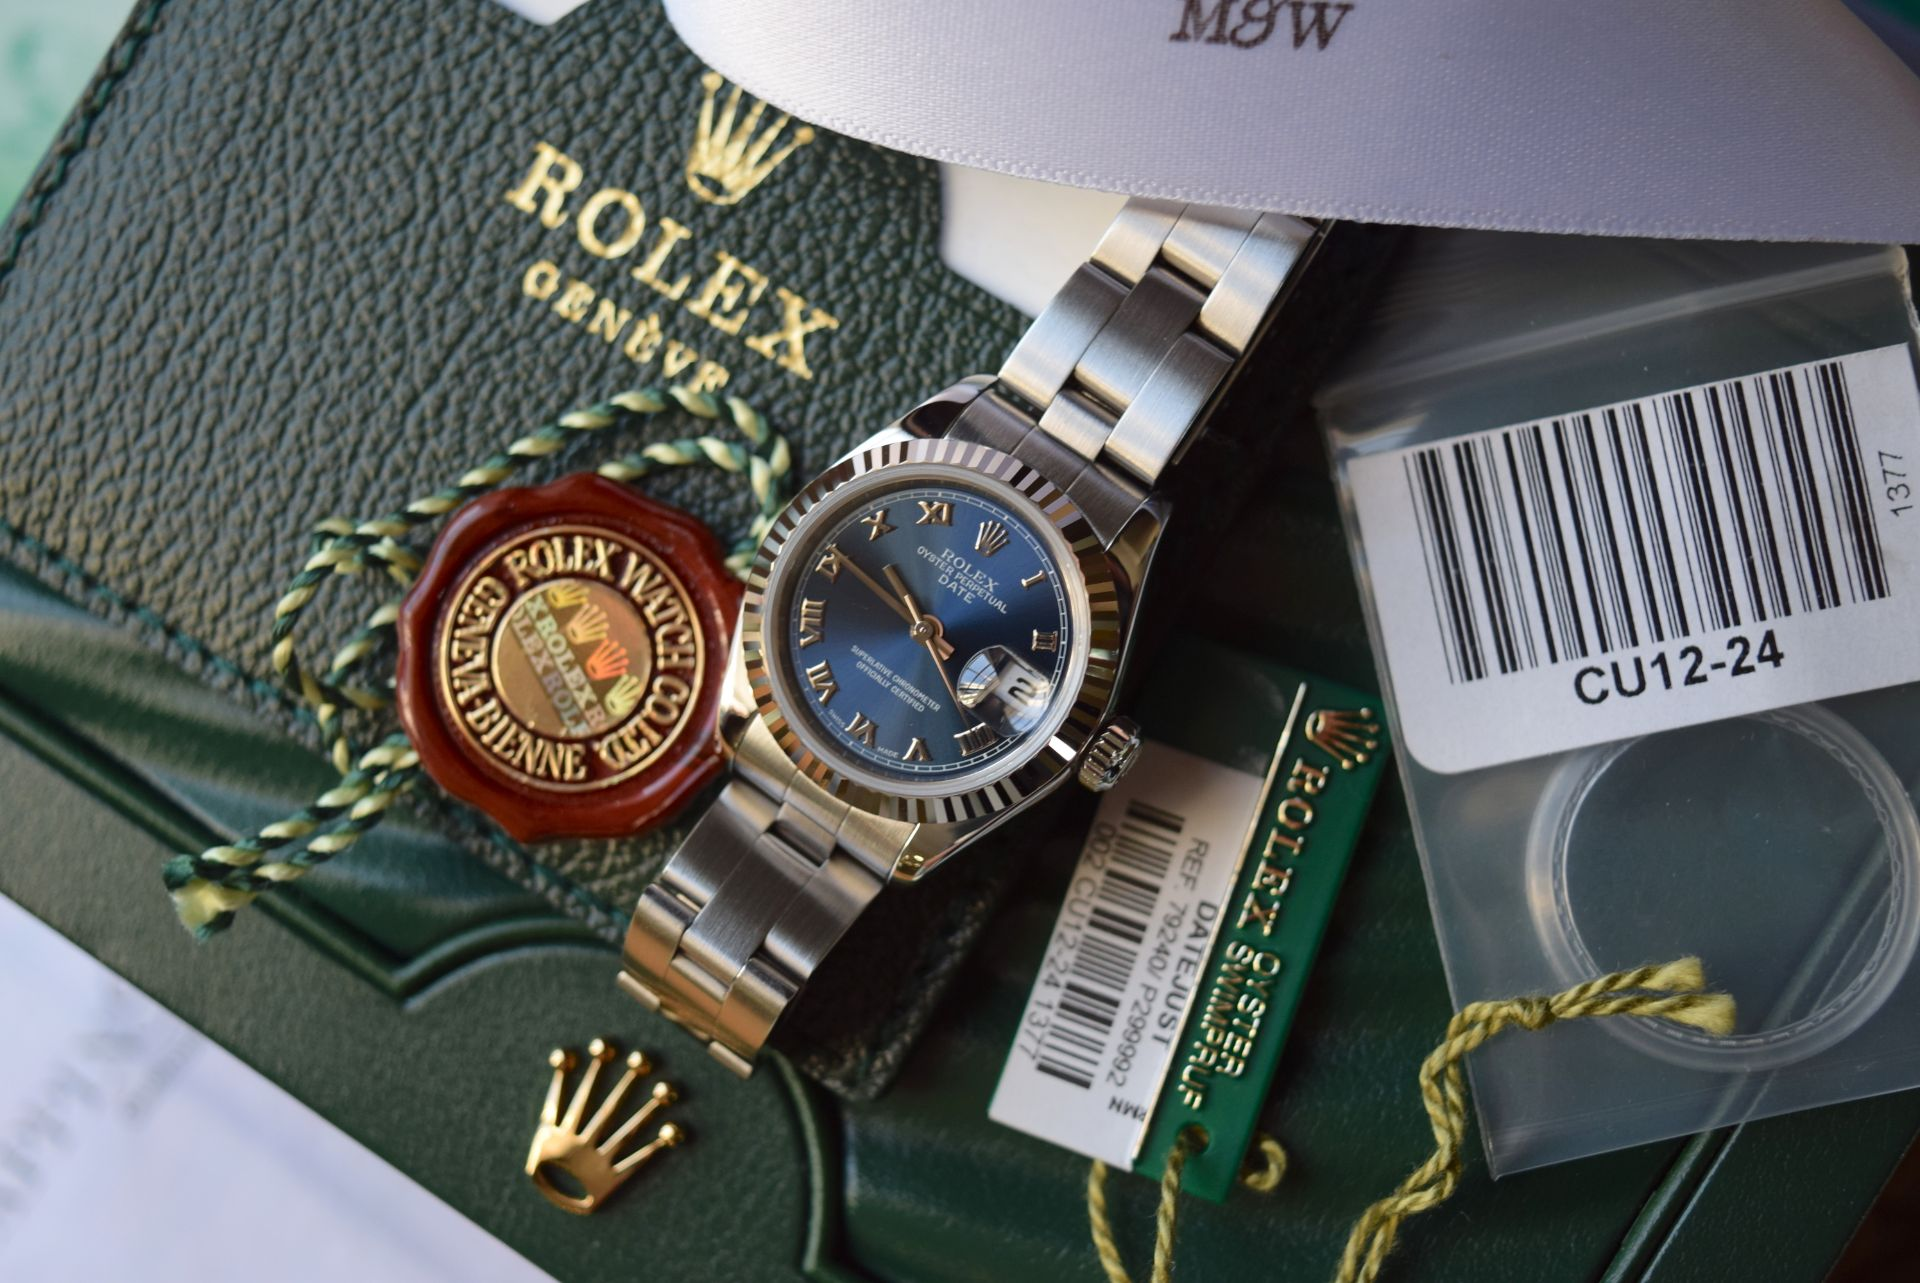 *FULL SET* ROLEX DATEJUST (LADIES) STEEL & 18CT WHITE GOLD - NAVY BLUE 'ROMAN NUMERAL' DIAL - Image 11 of 19